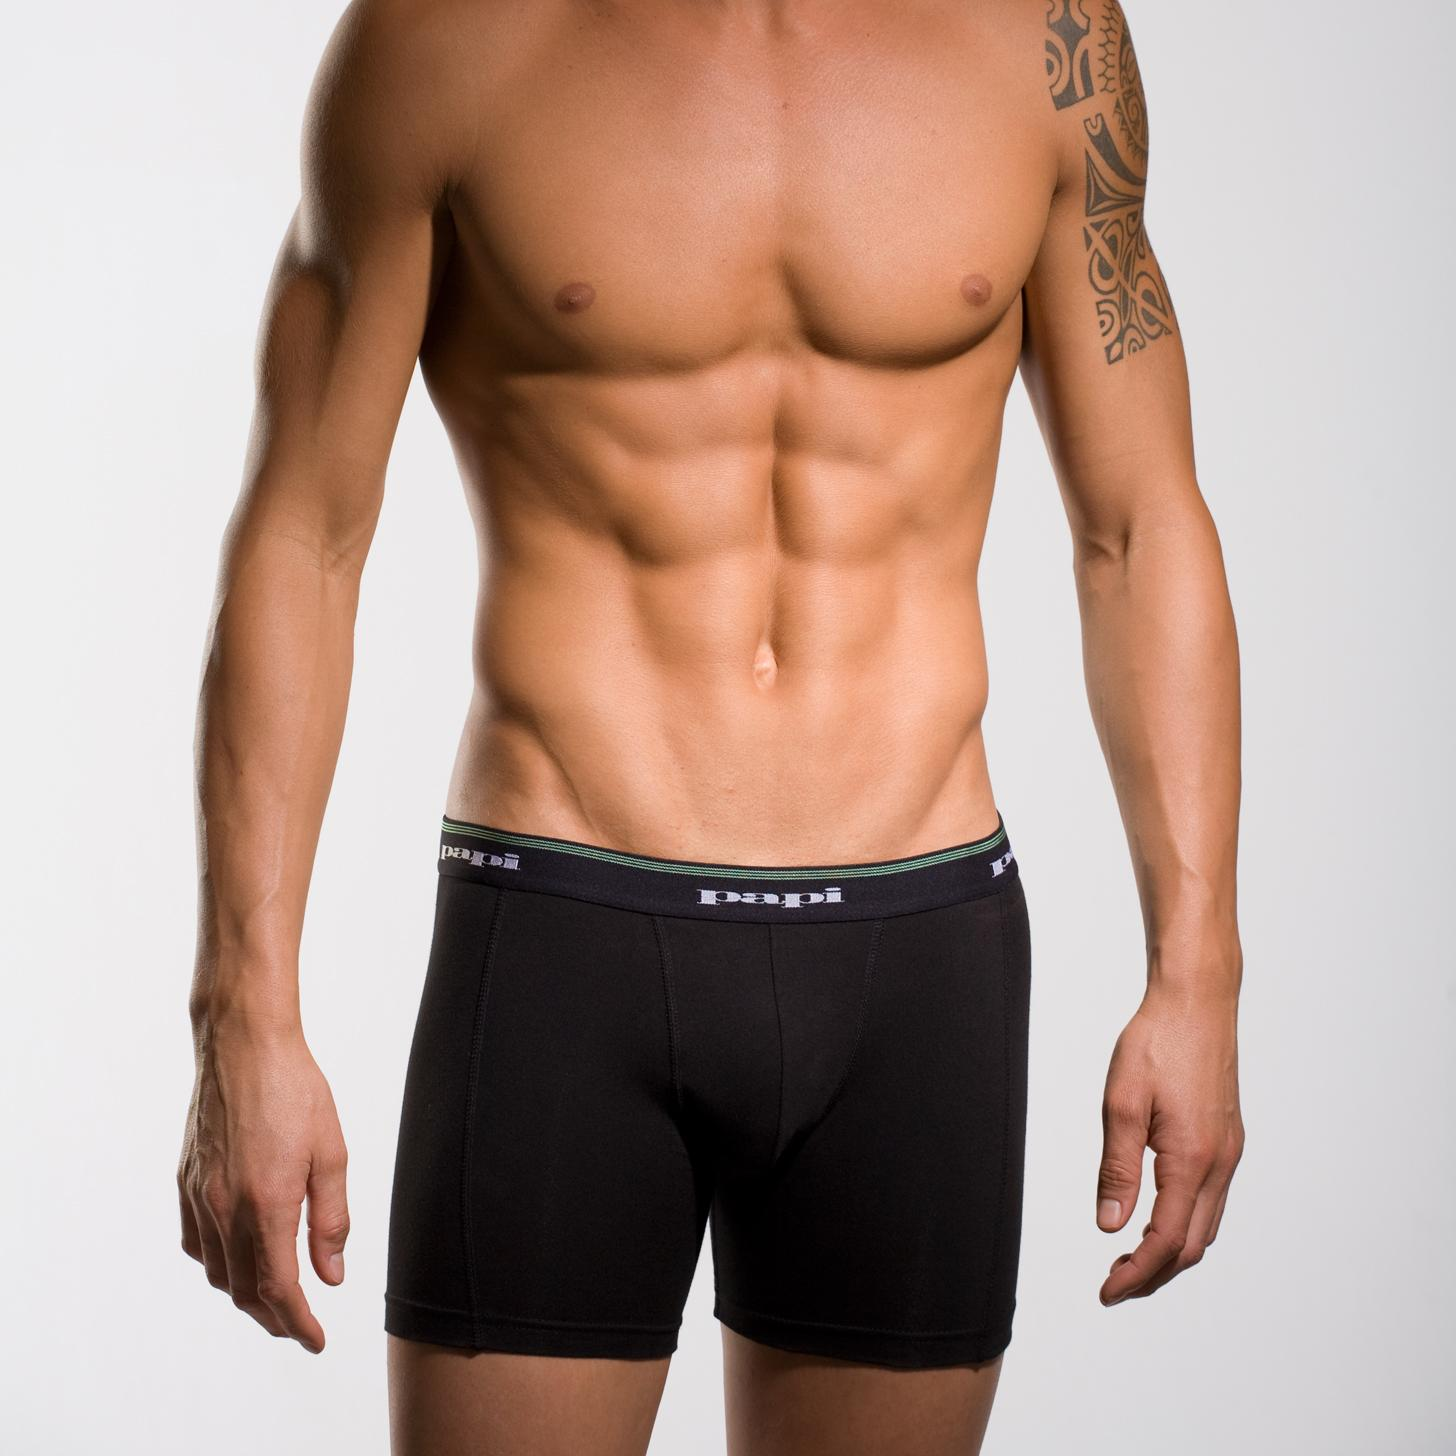 Calvin Klein is known for designing the best men's boxer briefs, offering superior quality, comfort and style. Showcase both your rough and sensual side with boxer briefs.